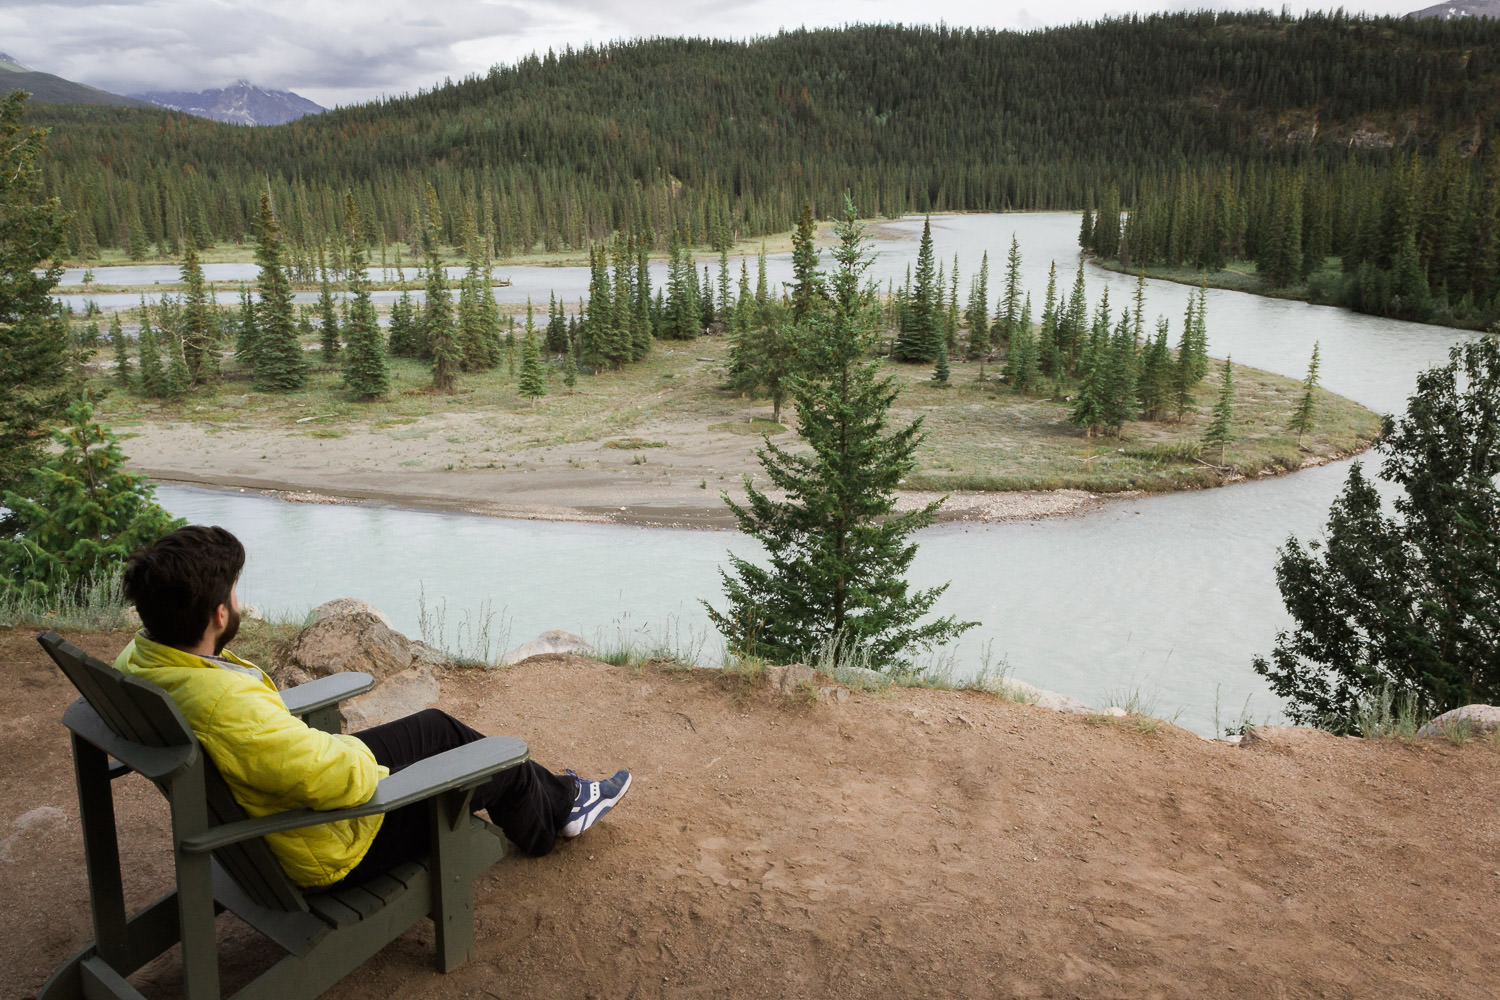 We spent two glorious nights in a tiny cabin nestled in Jasper National Park soaking up some much-needed R&R.Heaven!